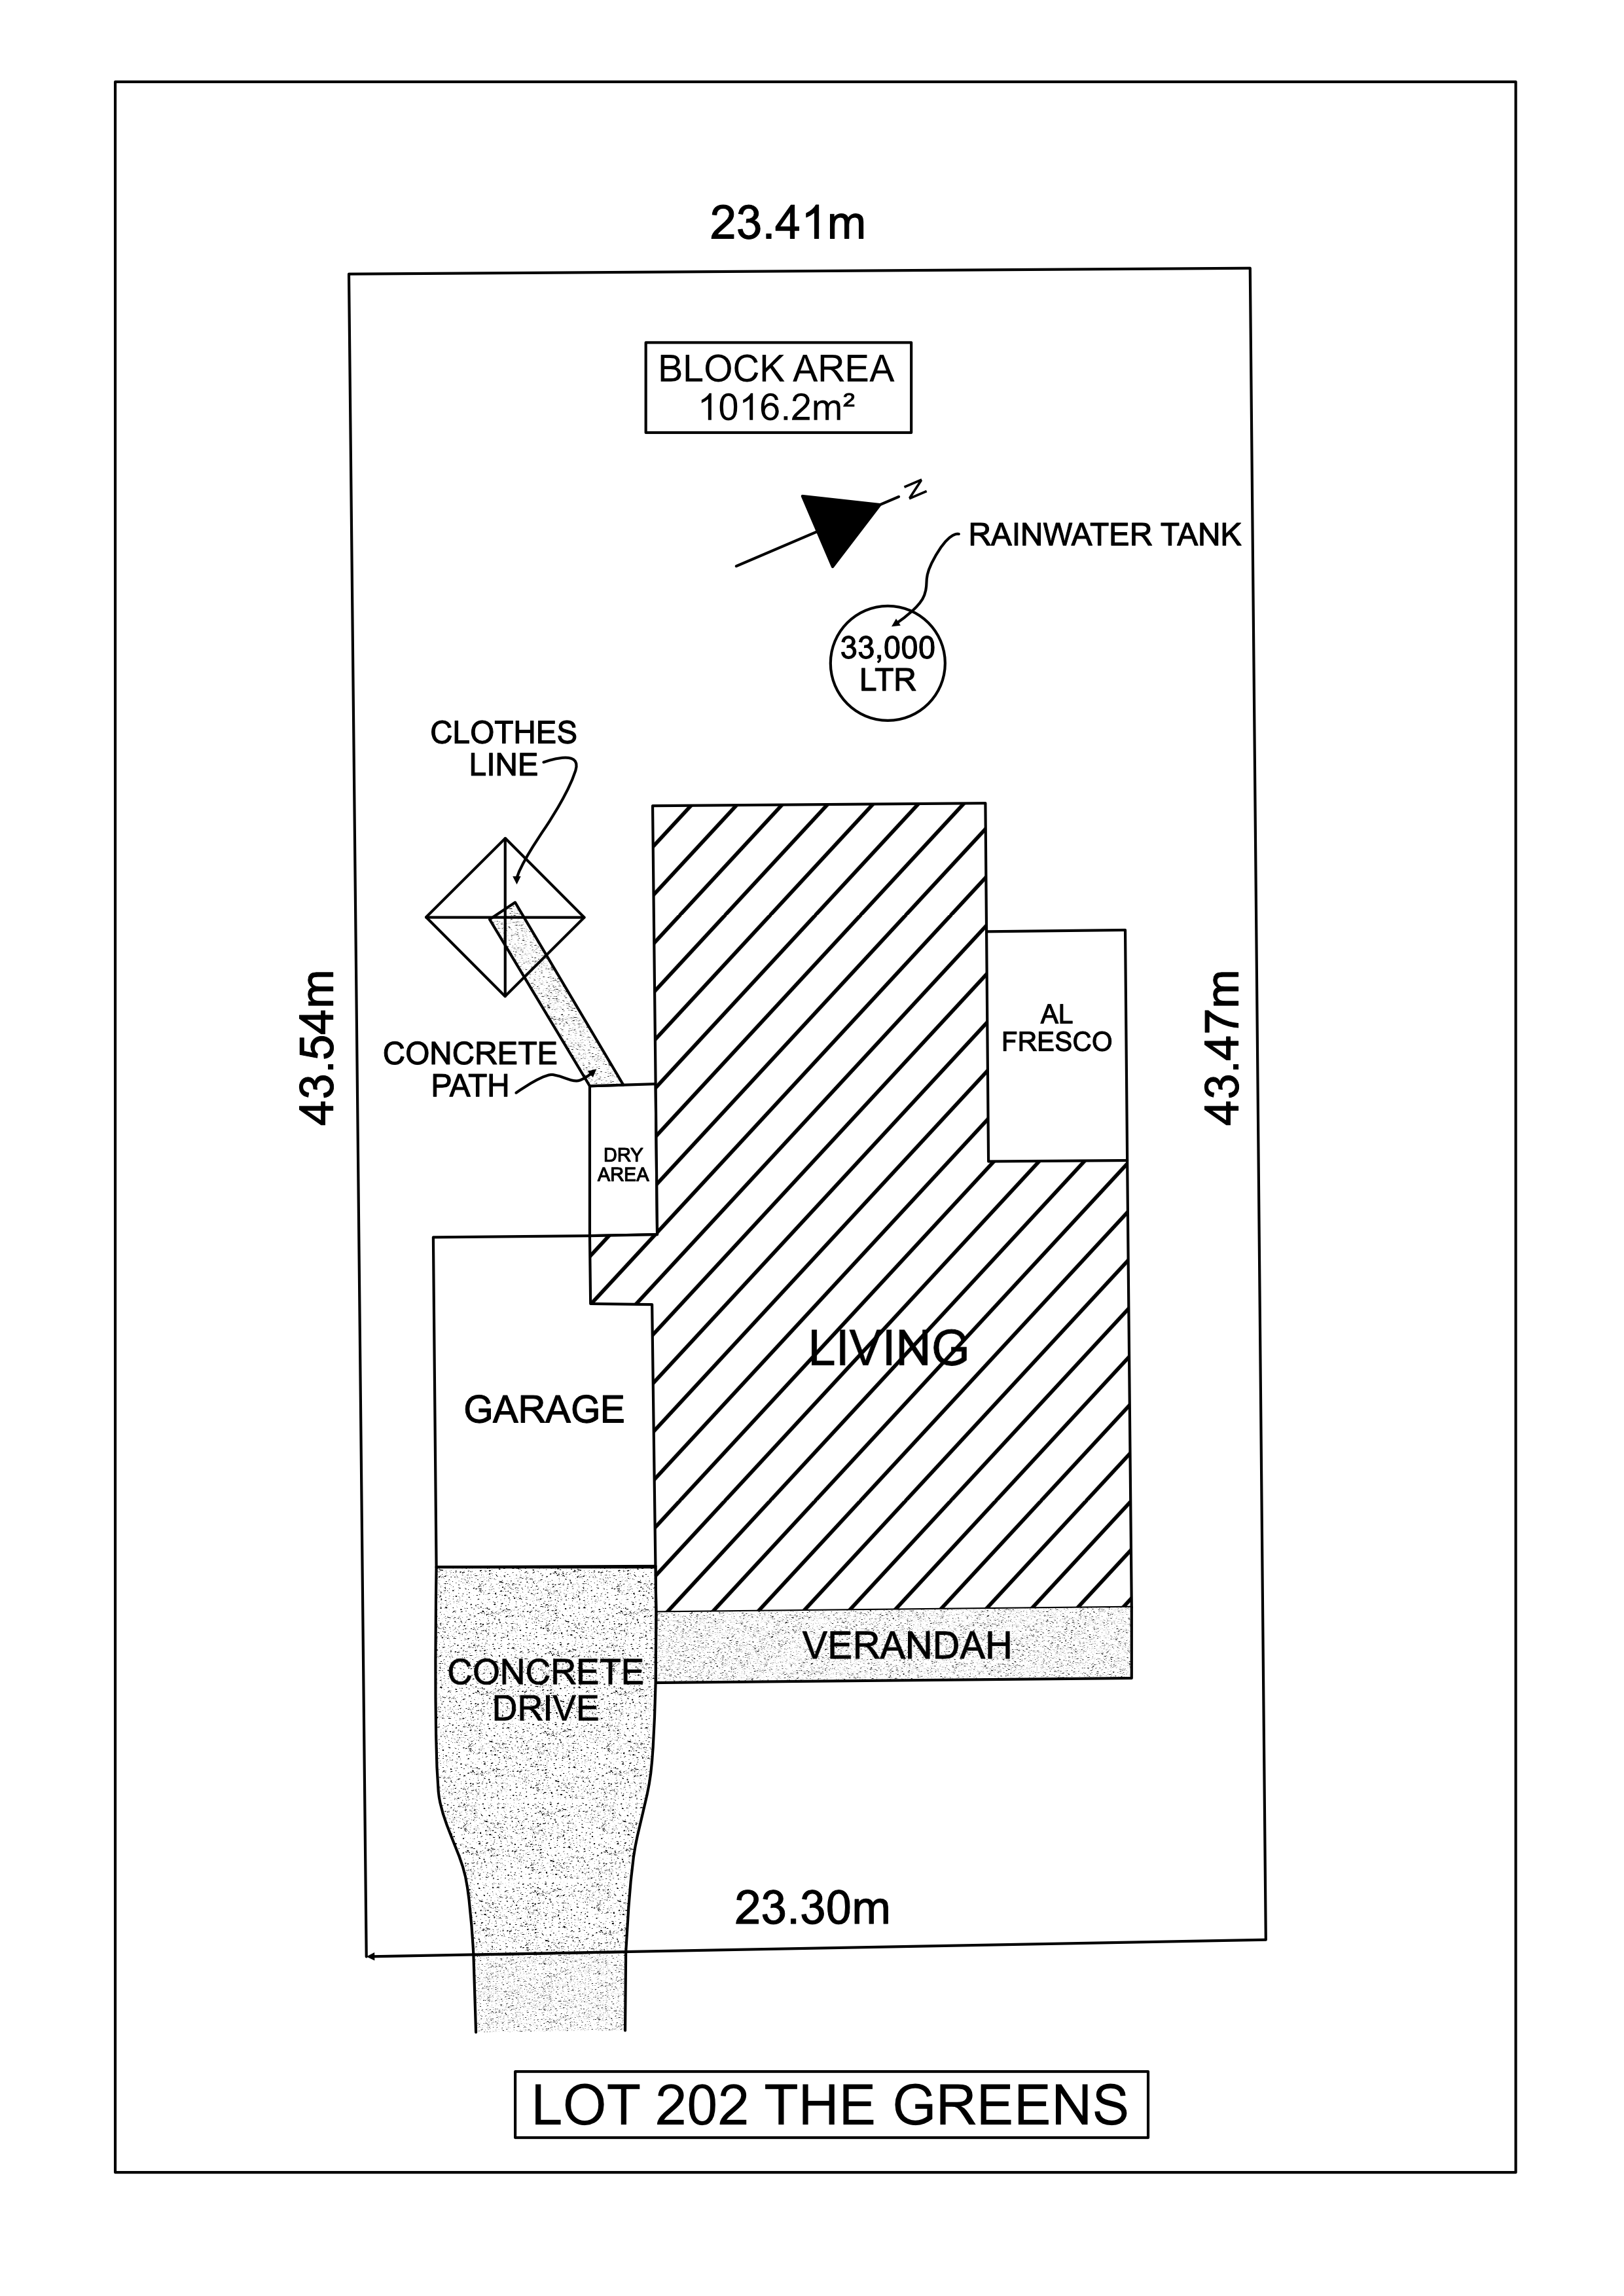 Lot 202 The Greens - Paterson Site Plan_1